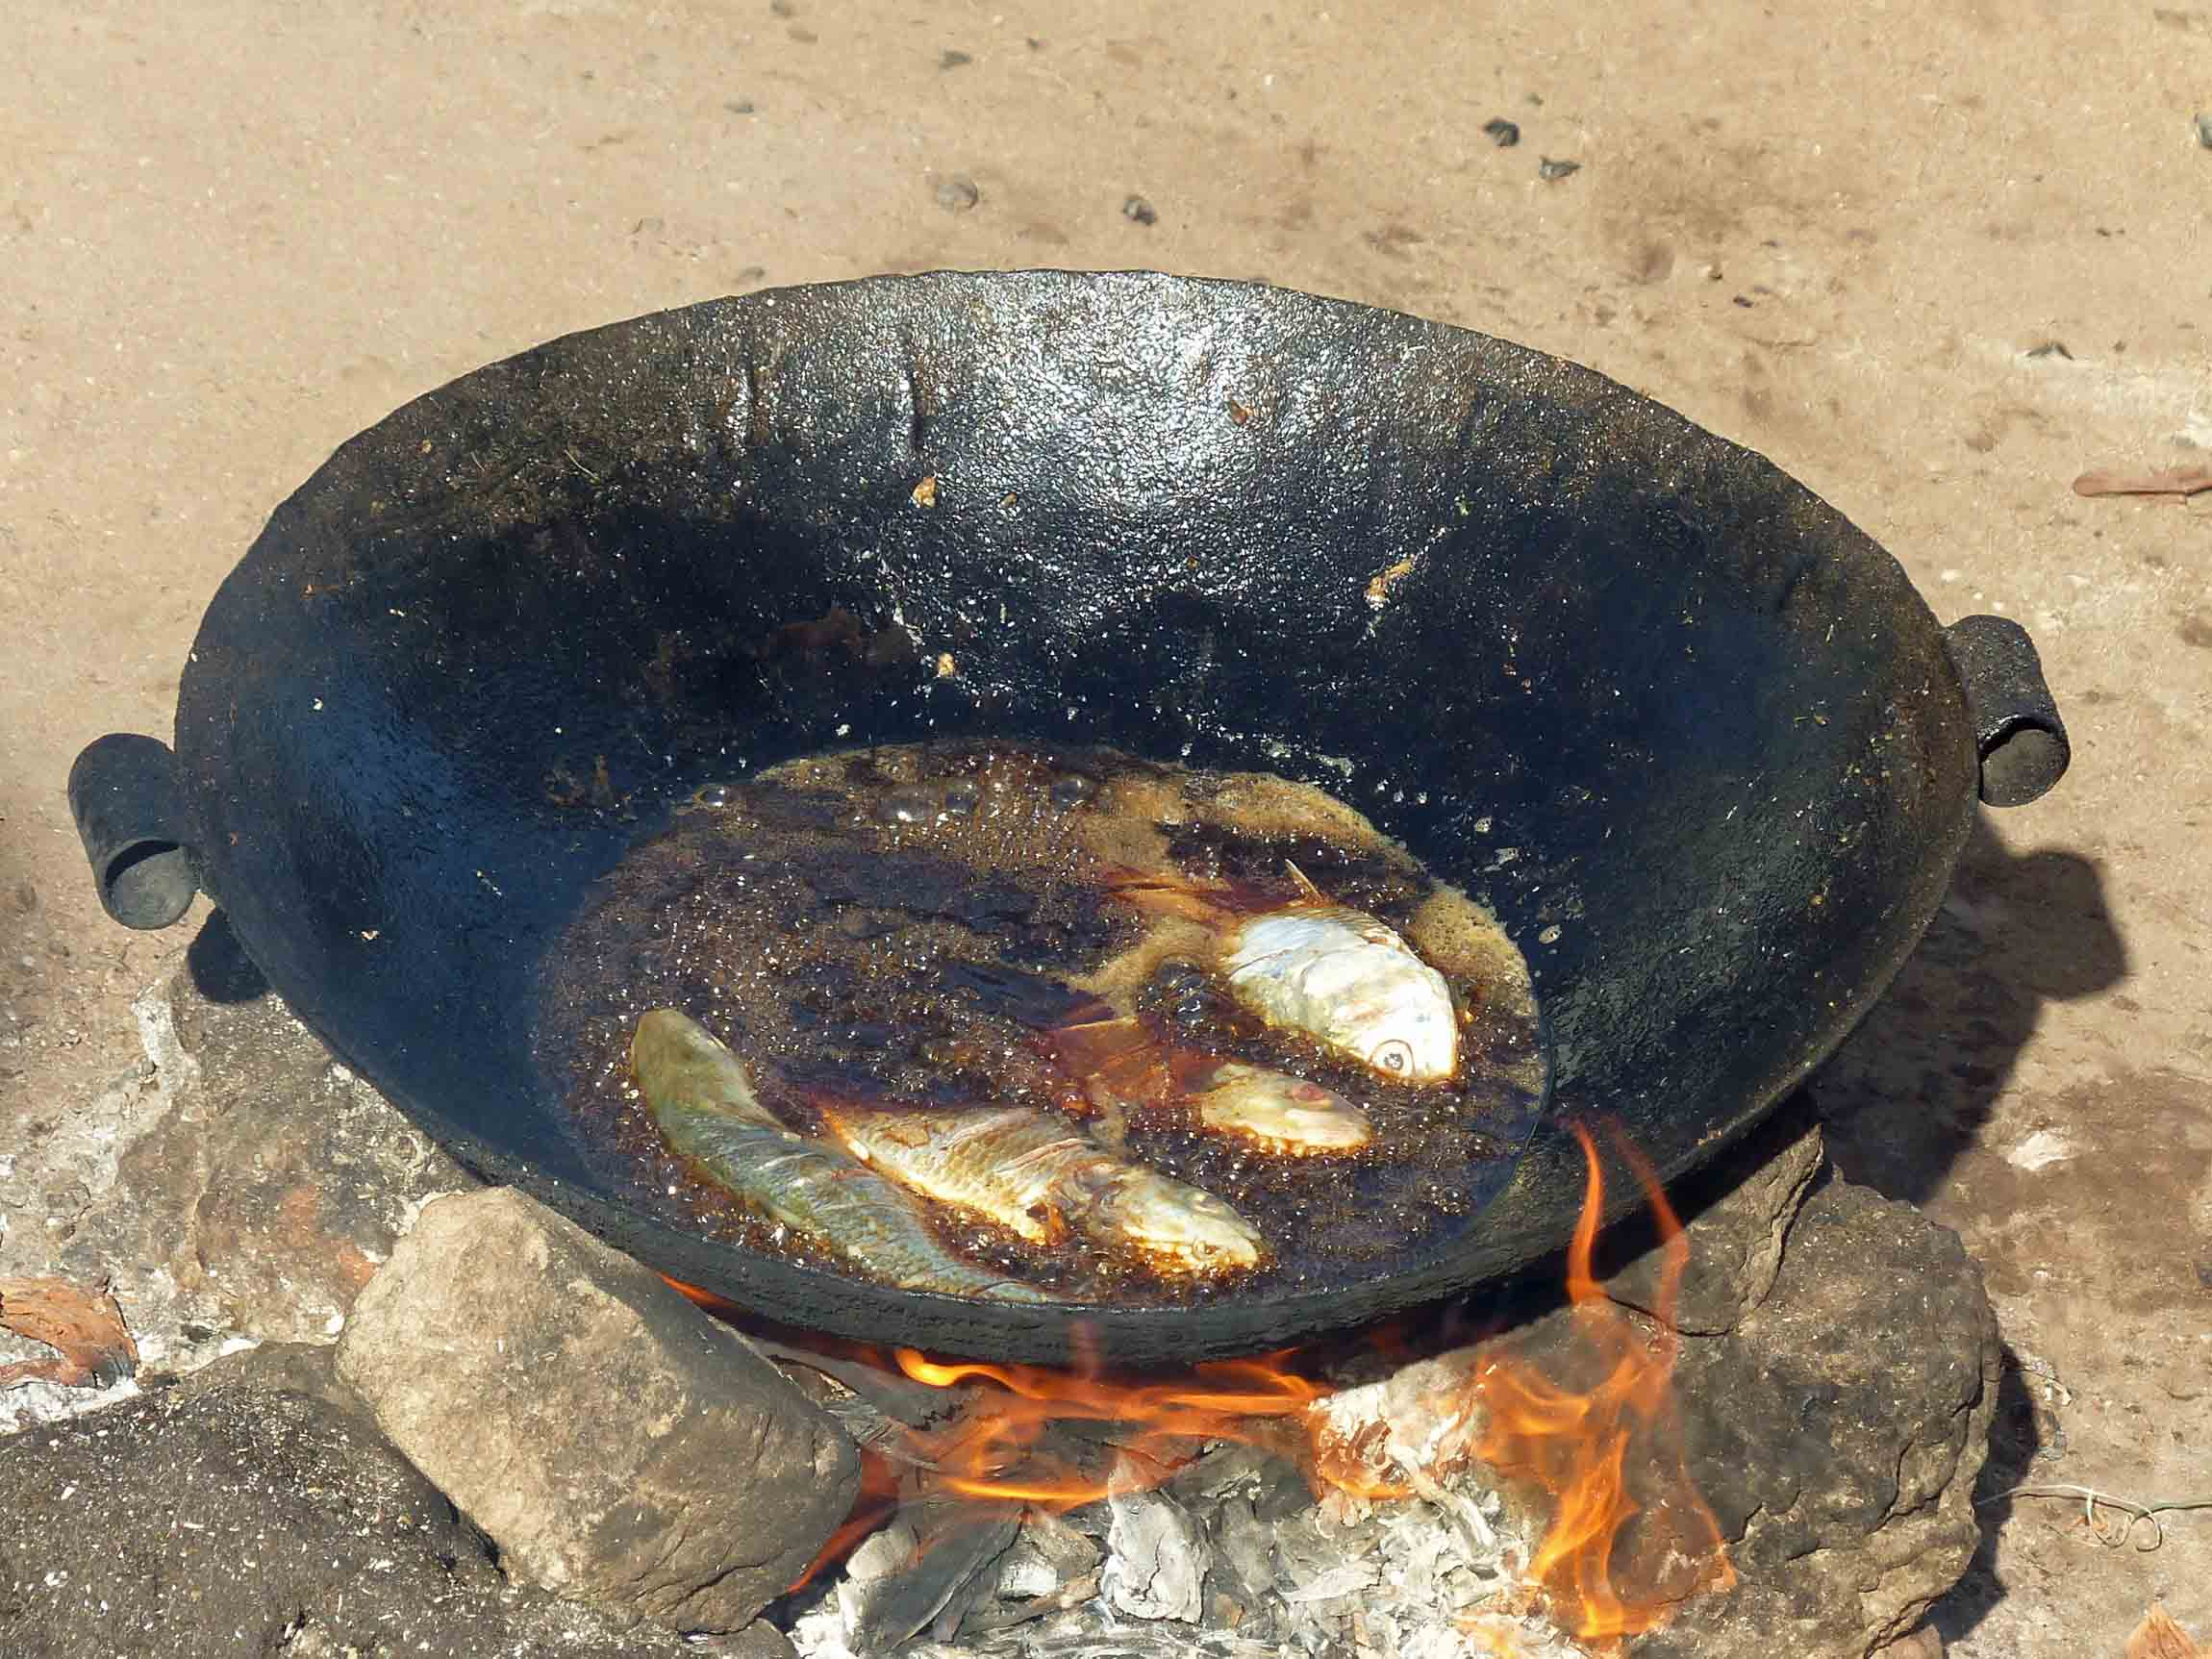 Four small fish frying in a pan